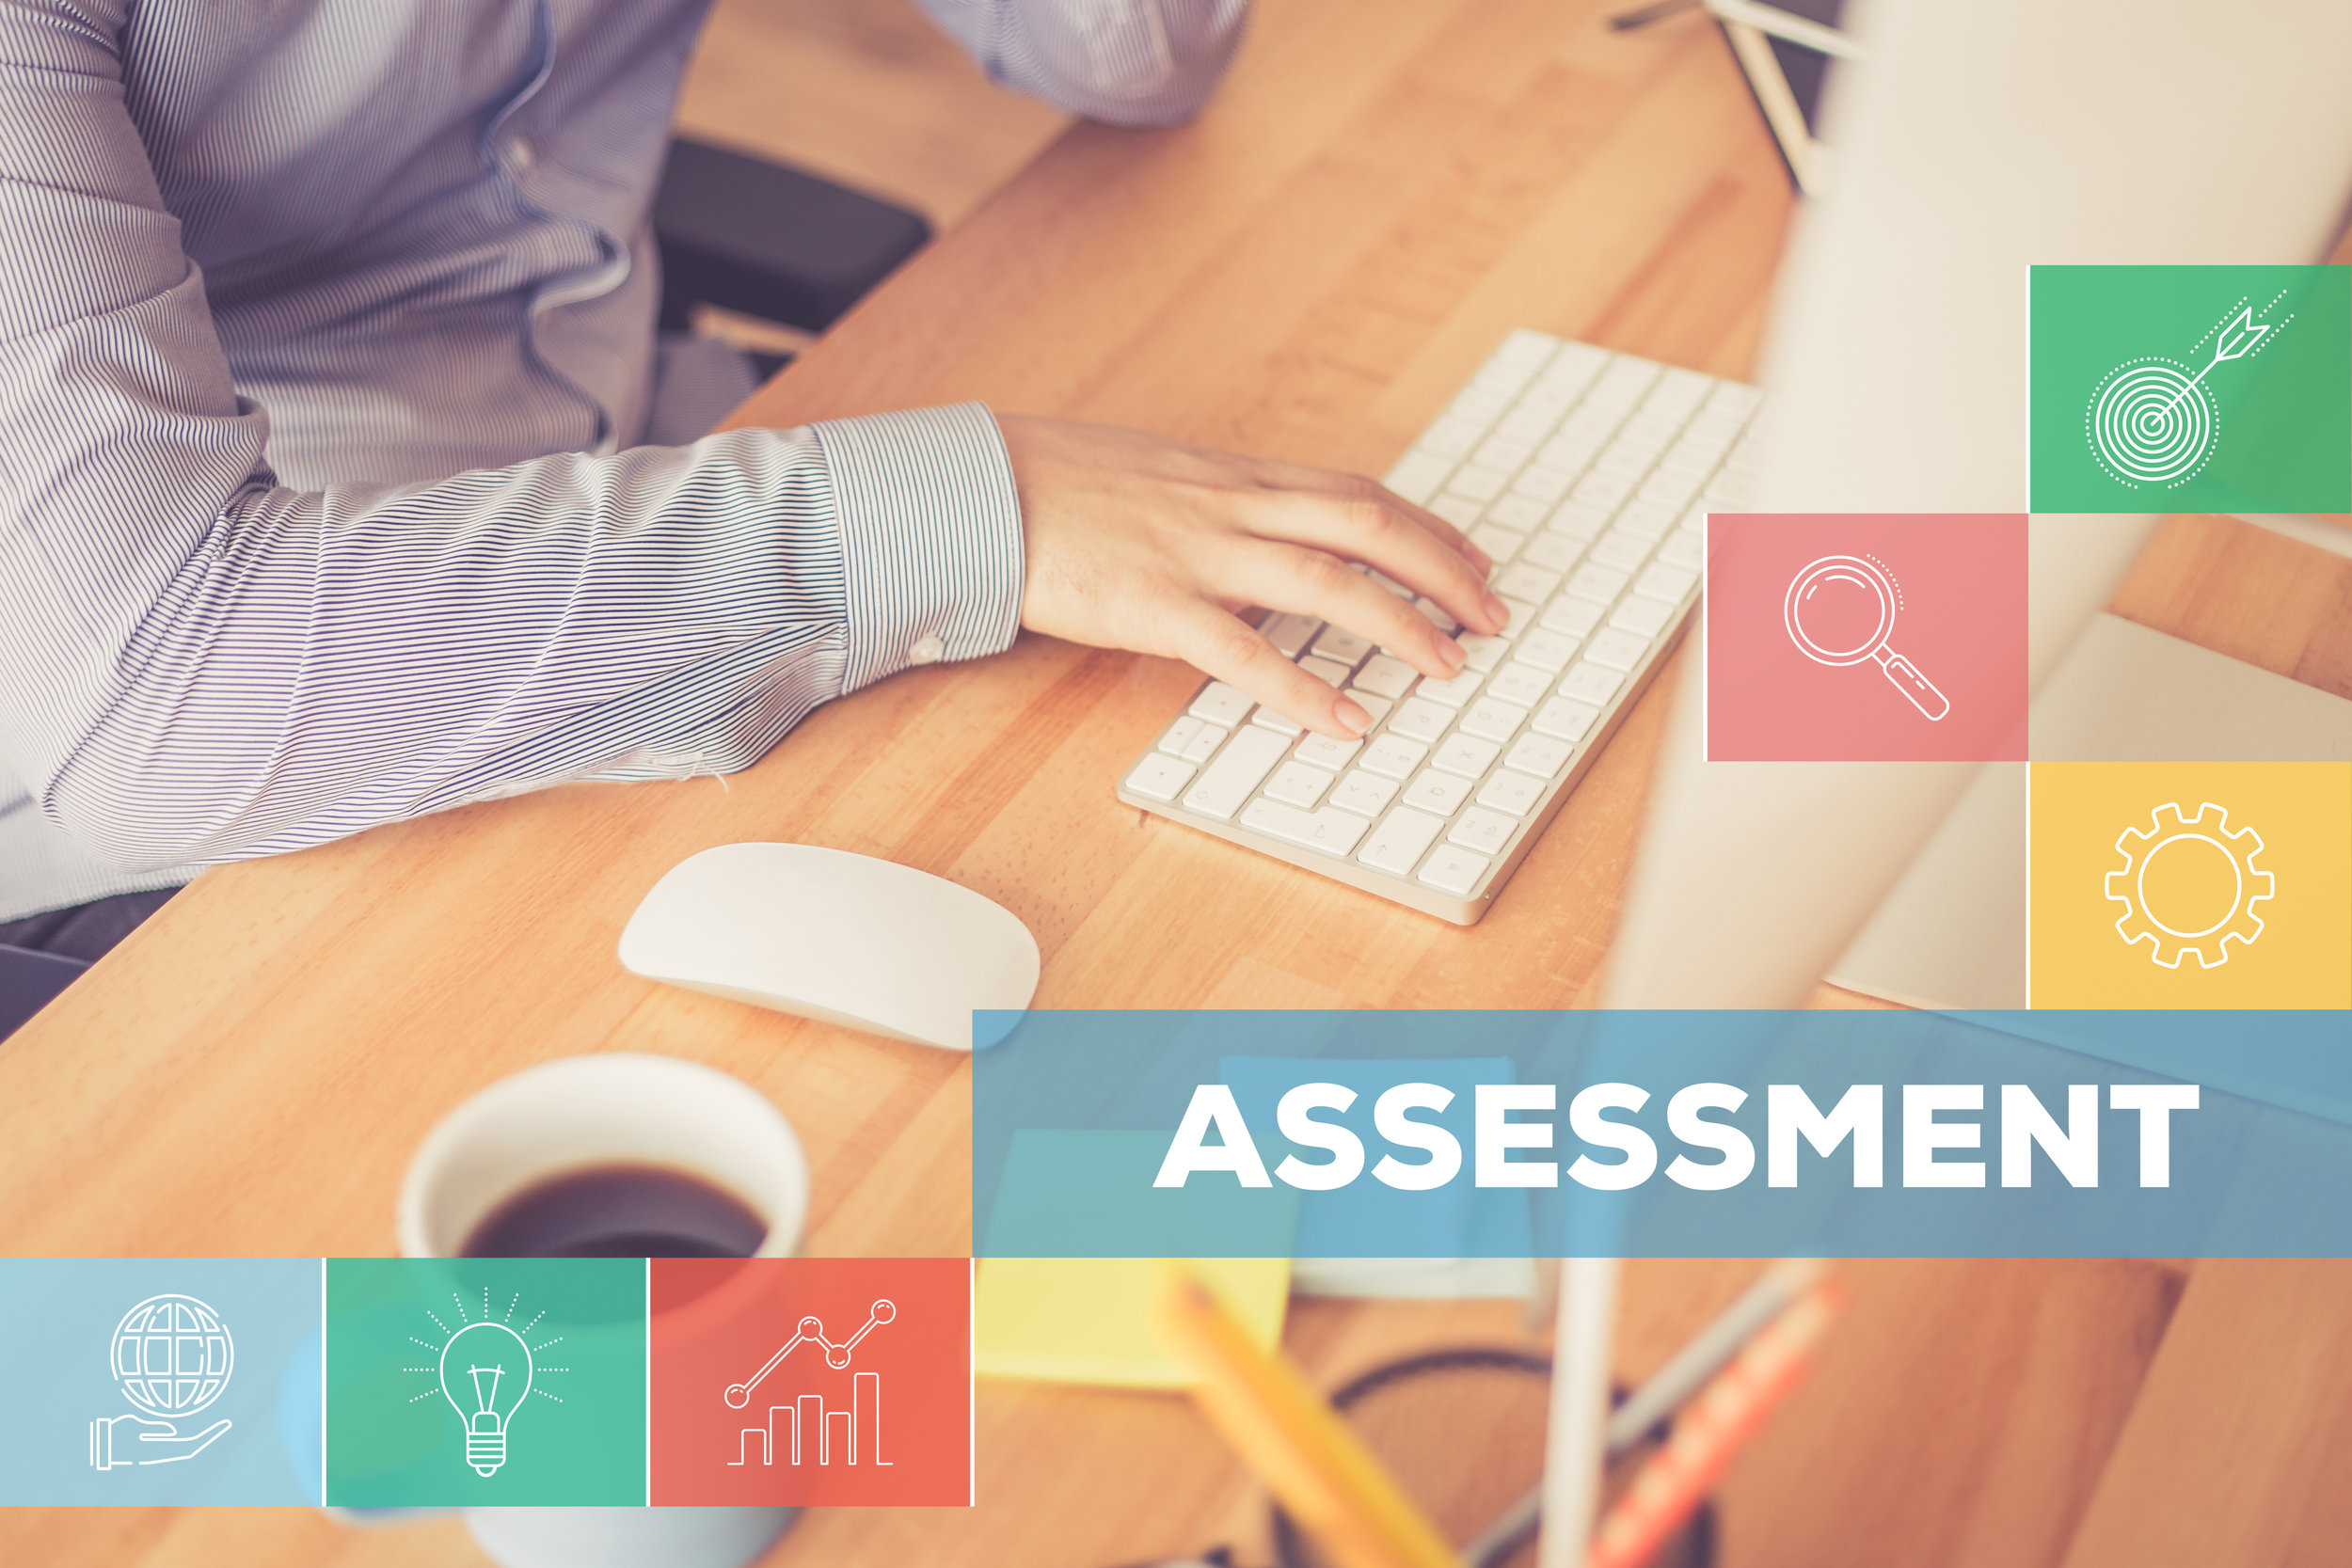 Canva - ASSESSMENT CONCEPT.jpg